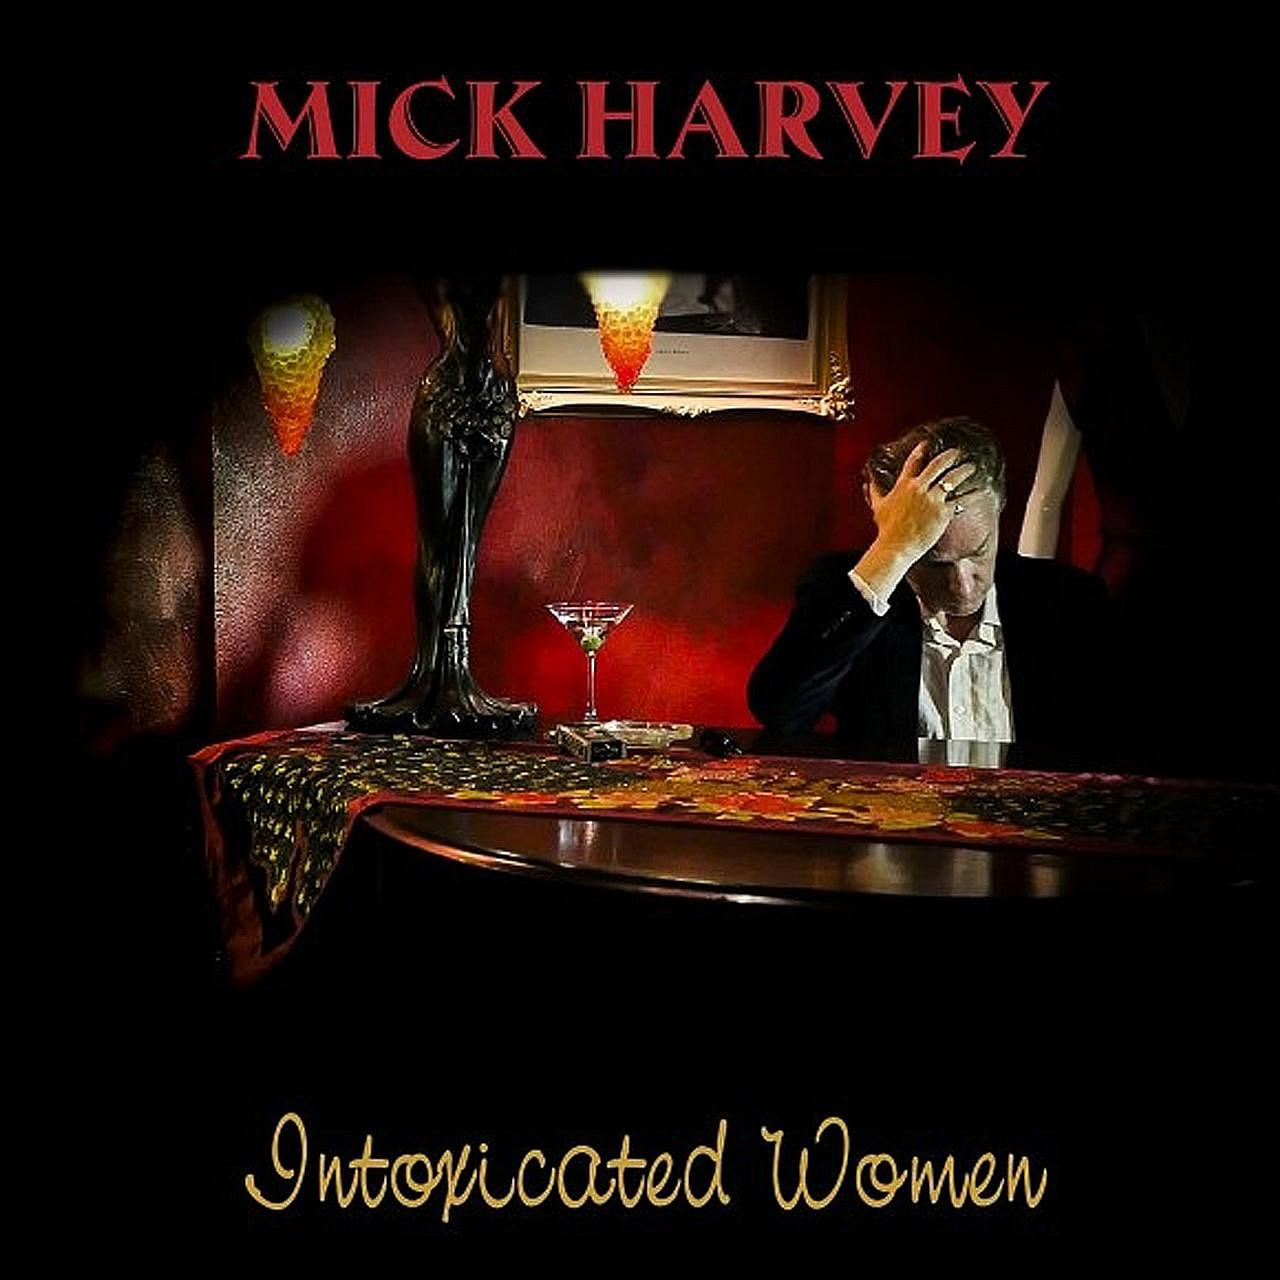 Intoxicated Women is Mick Harvey's (above) fourth and final album focused on Serge Gainsbourg's music.